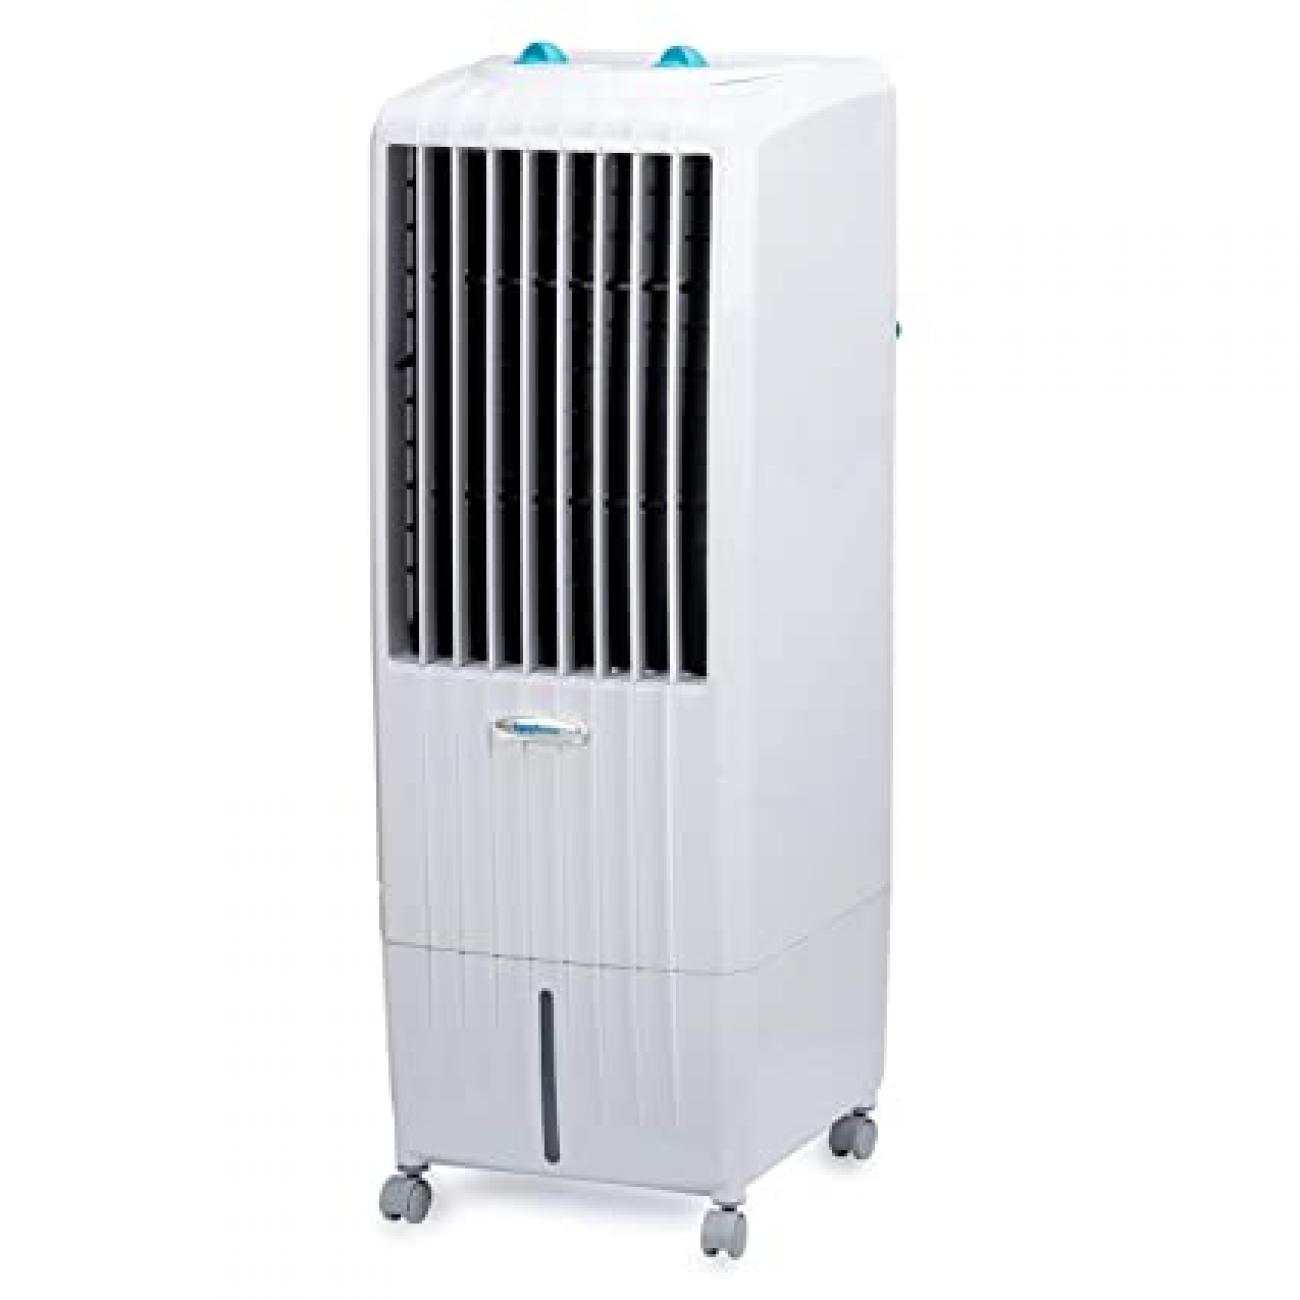 Diet 12T Personal Tower Air